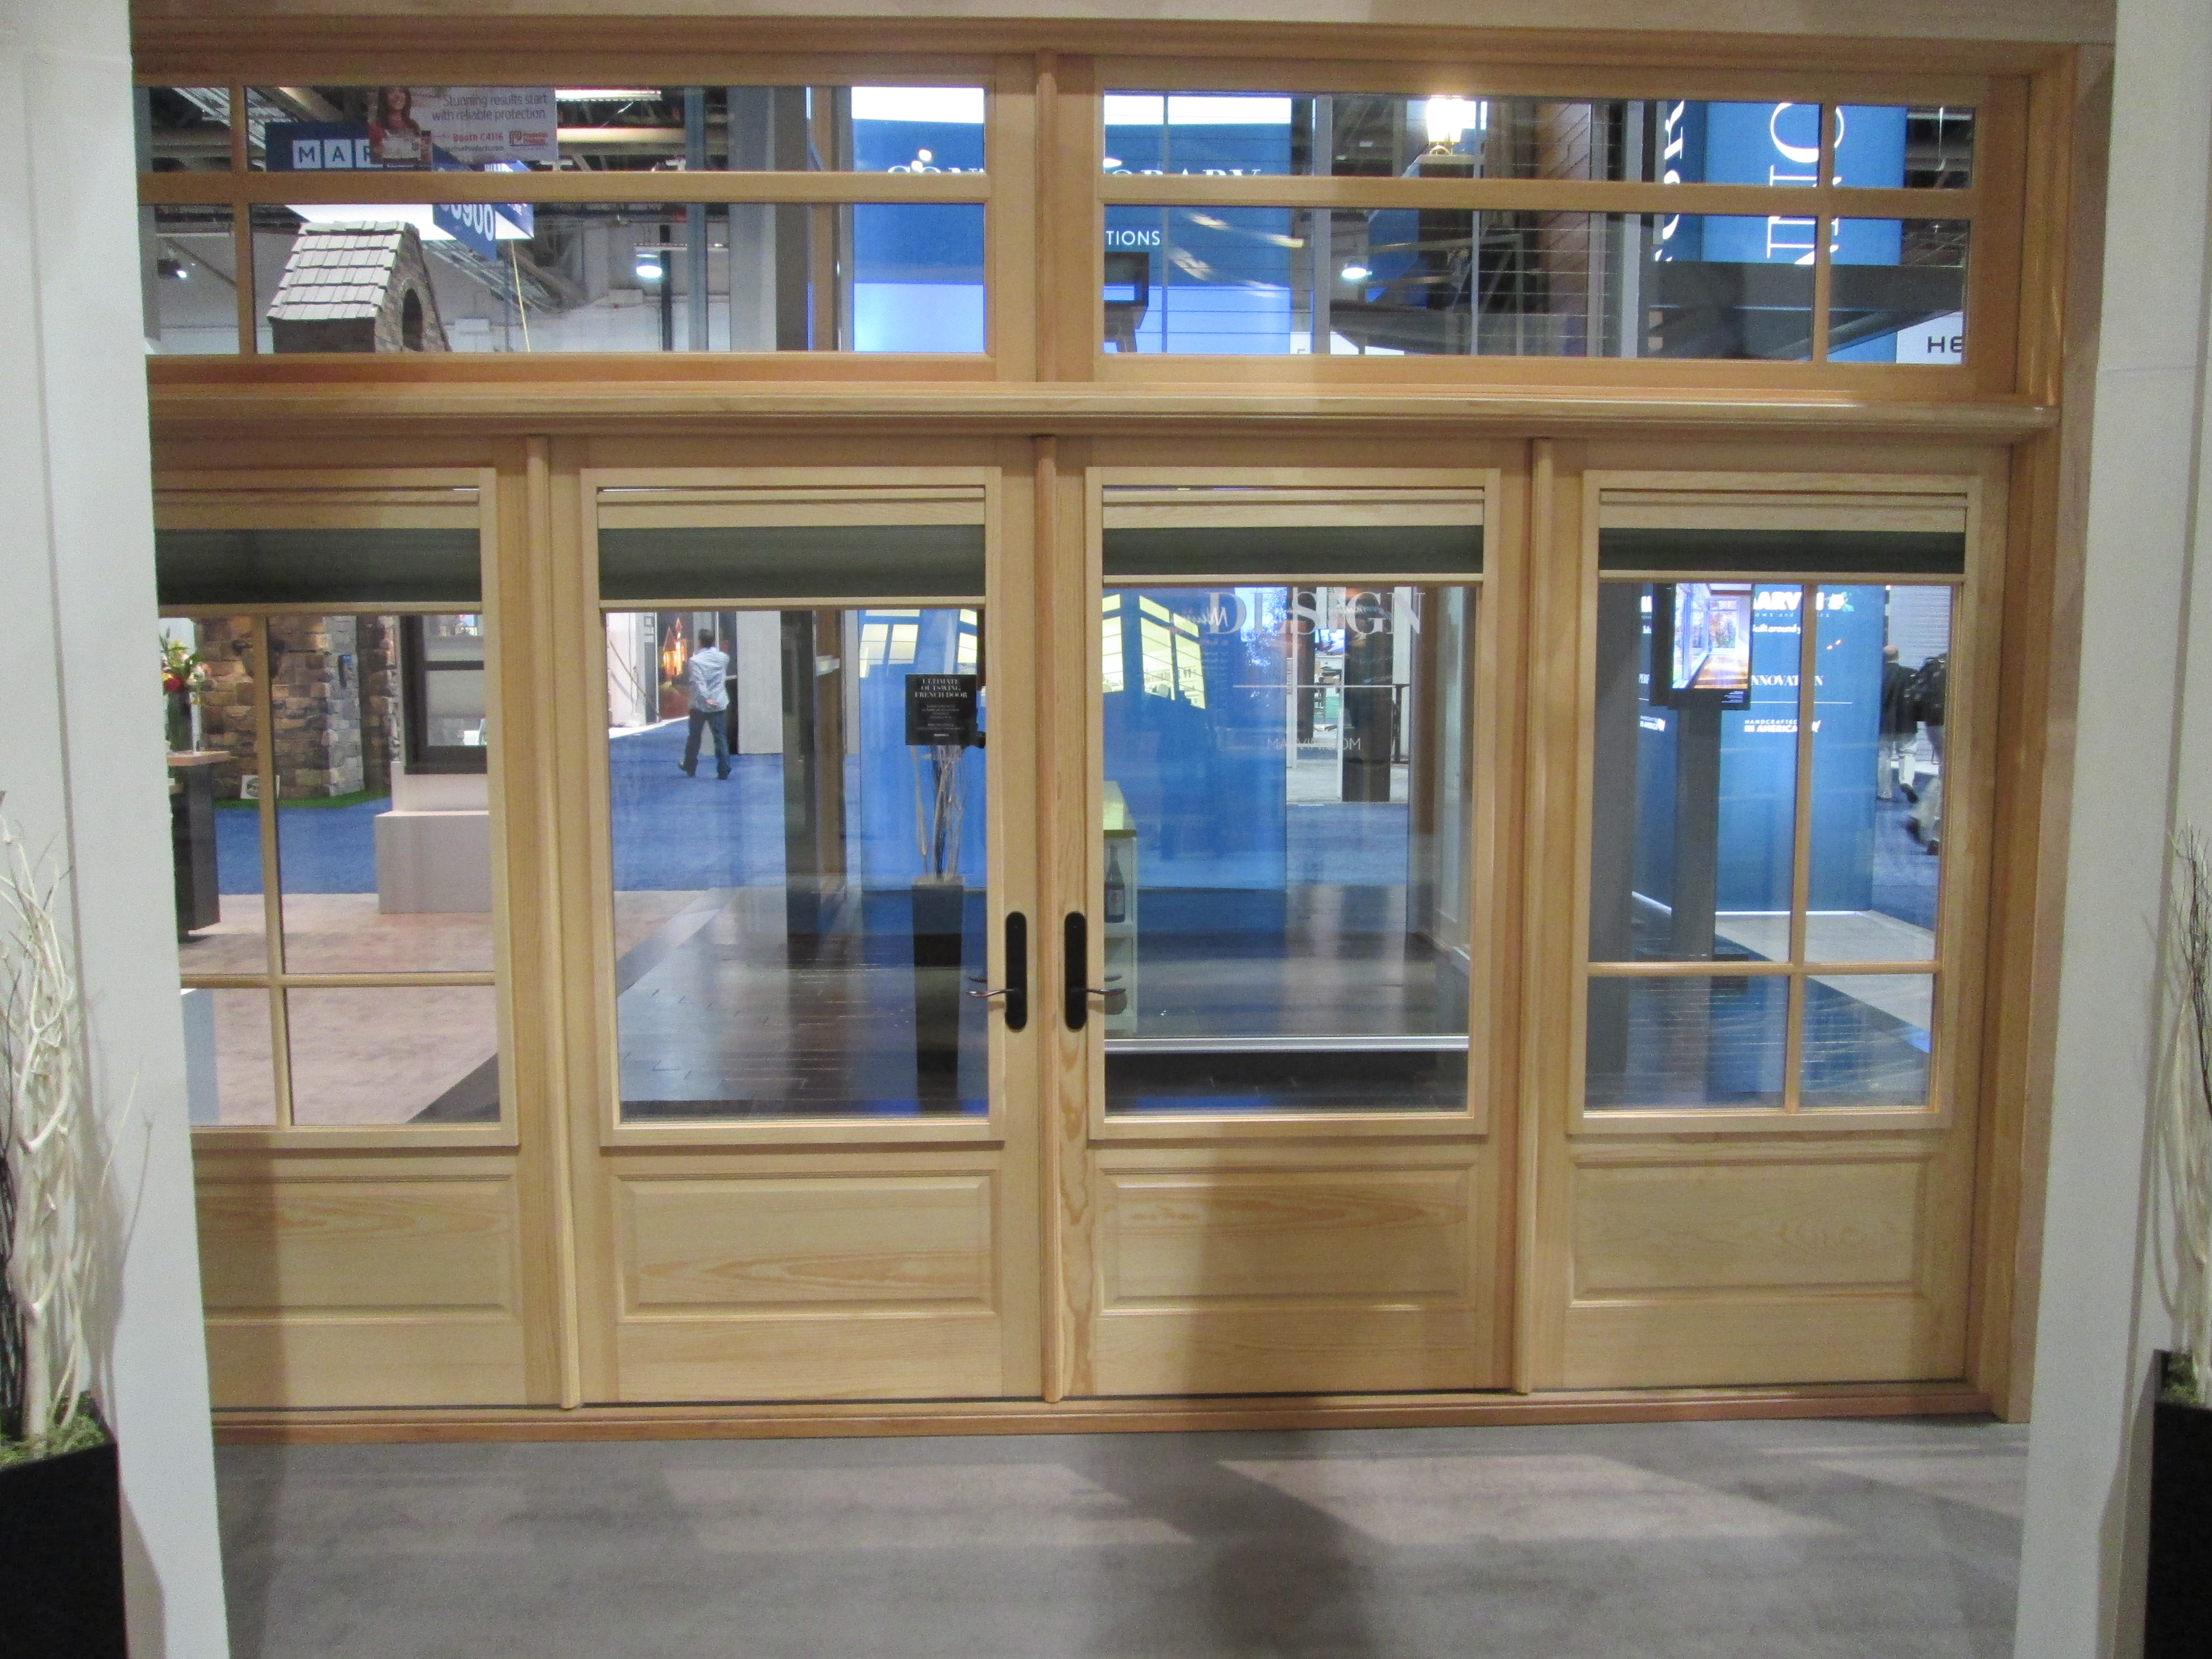 Interior shades for windows and doors from marvin ot glass for Marvin transom windows